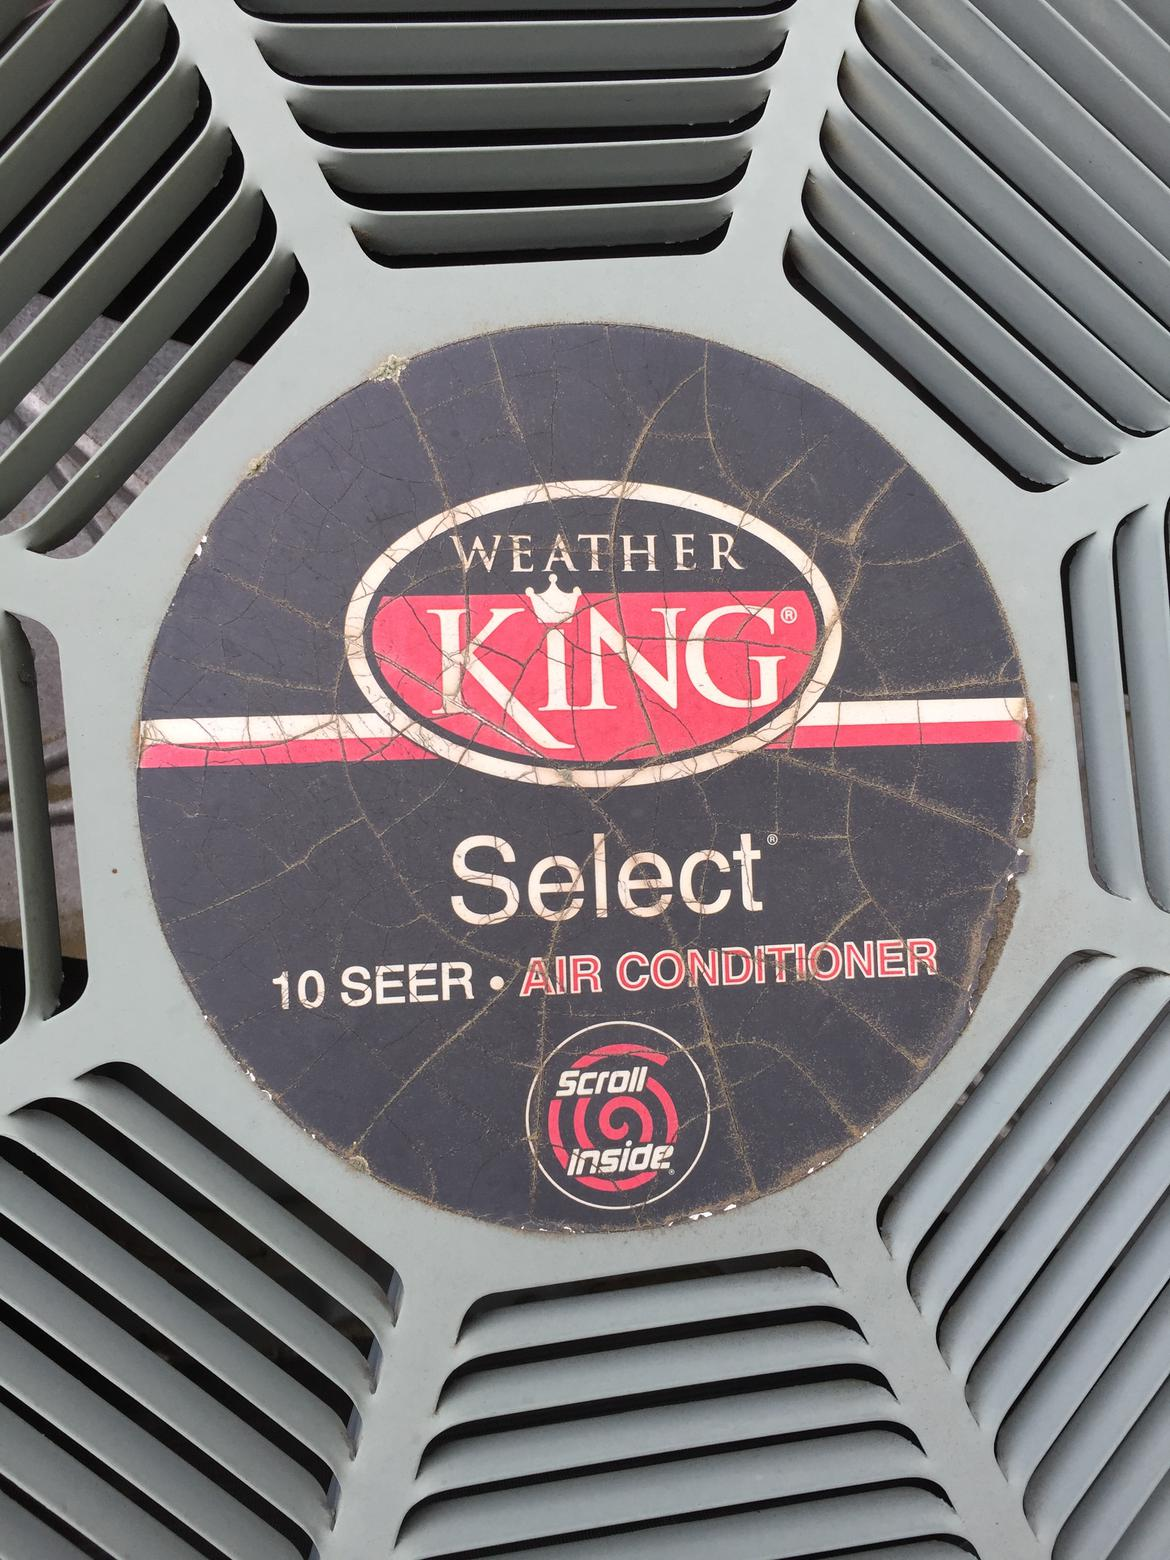 Weather King Select A/C, outdoor fan not spinning| Off-Topic